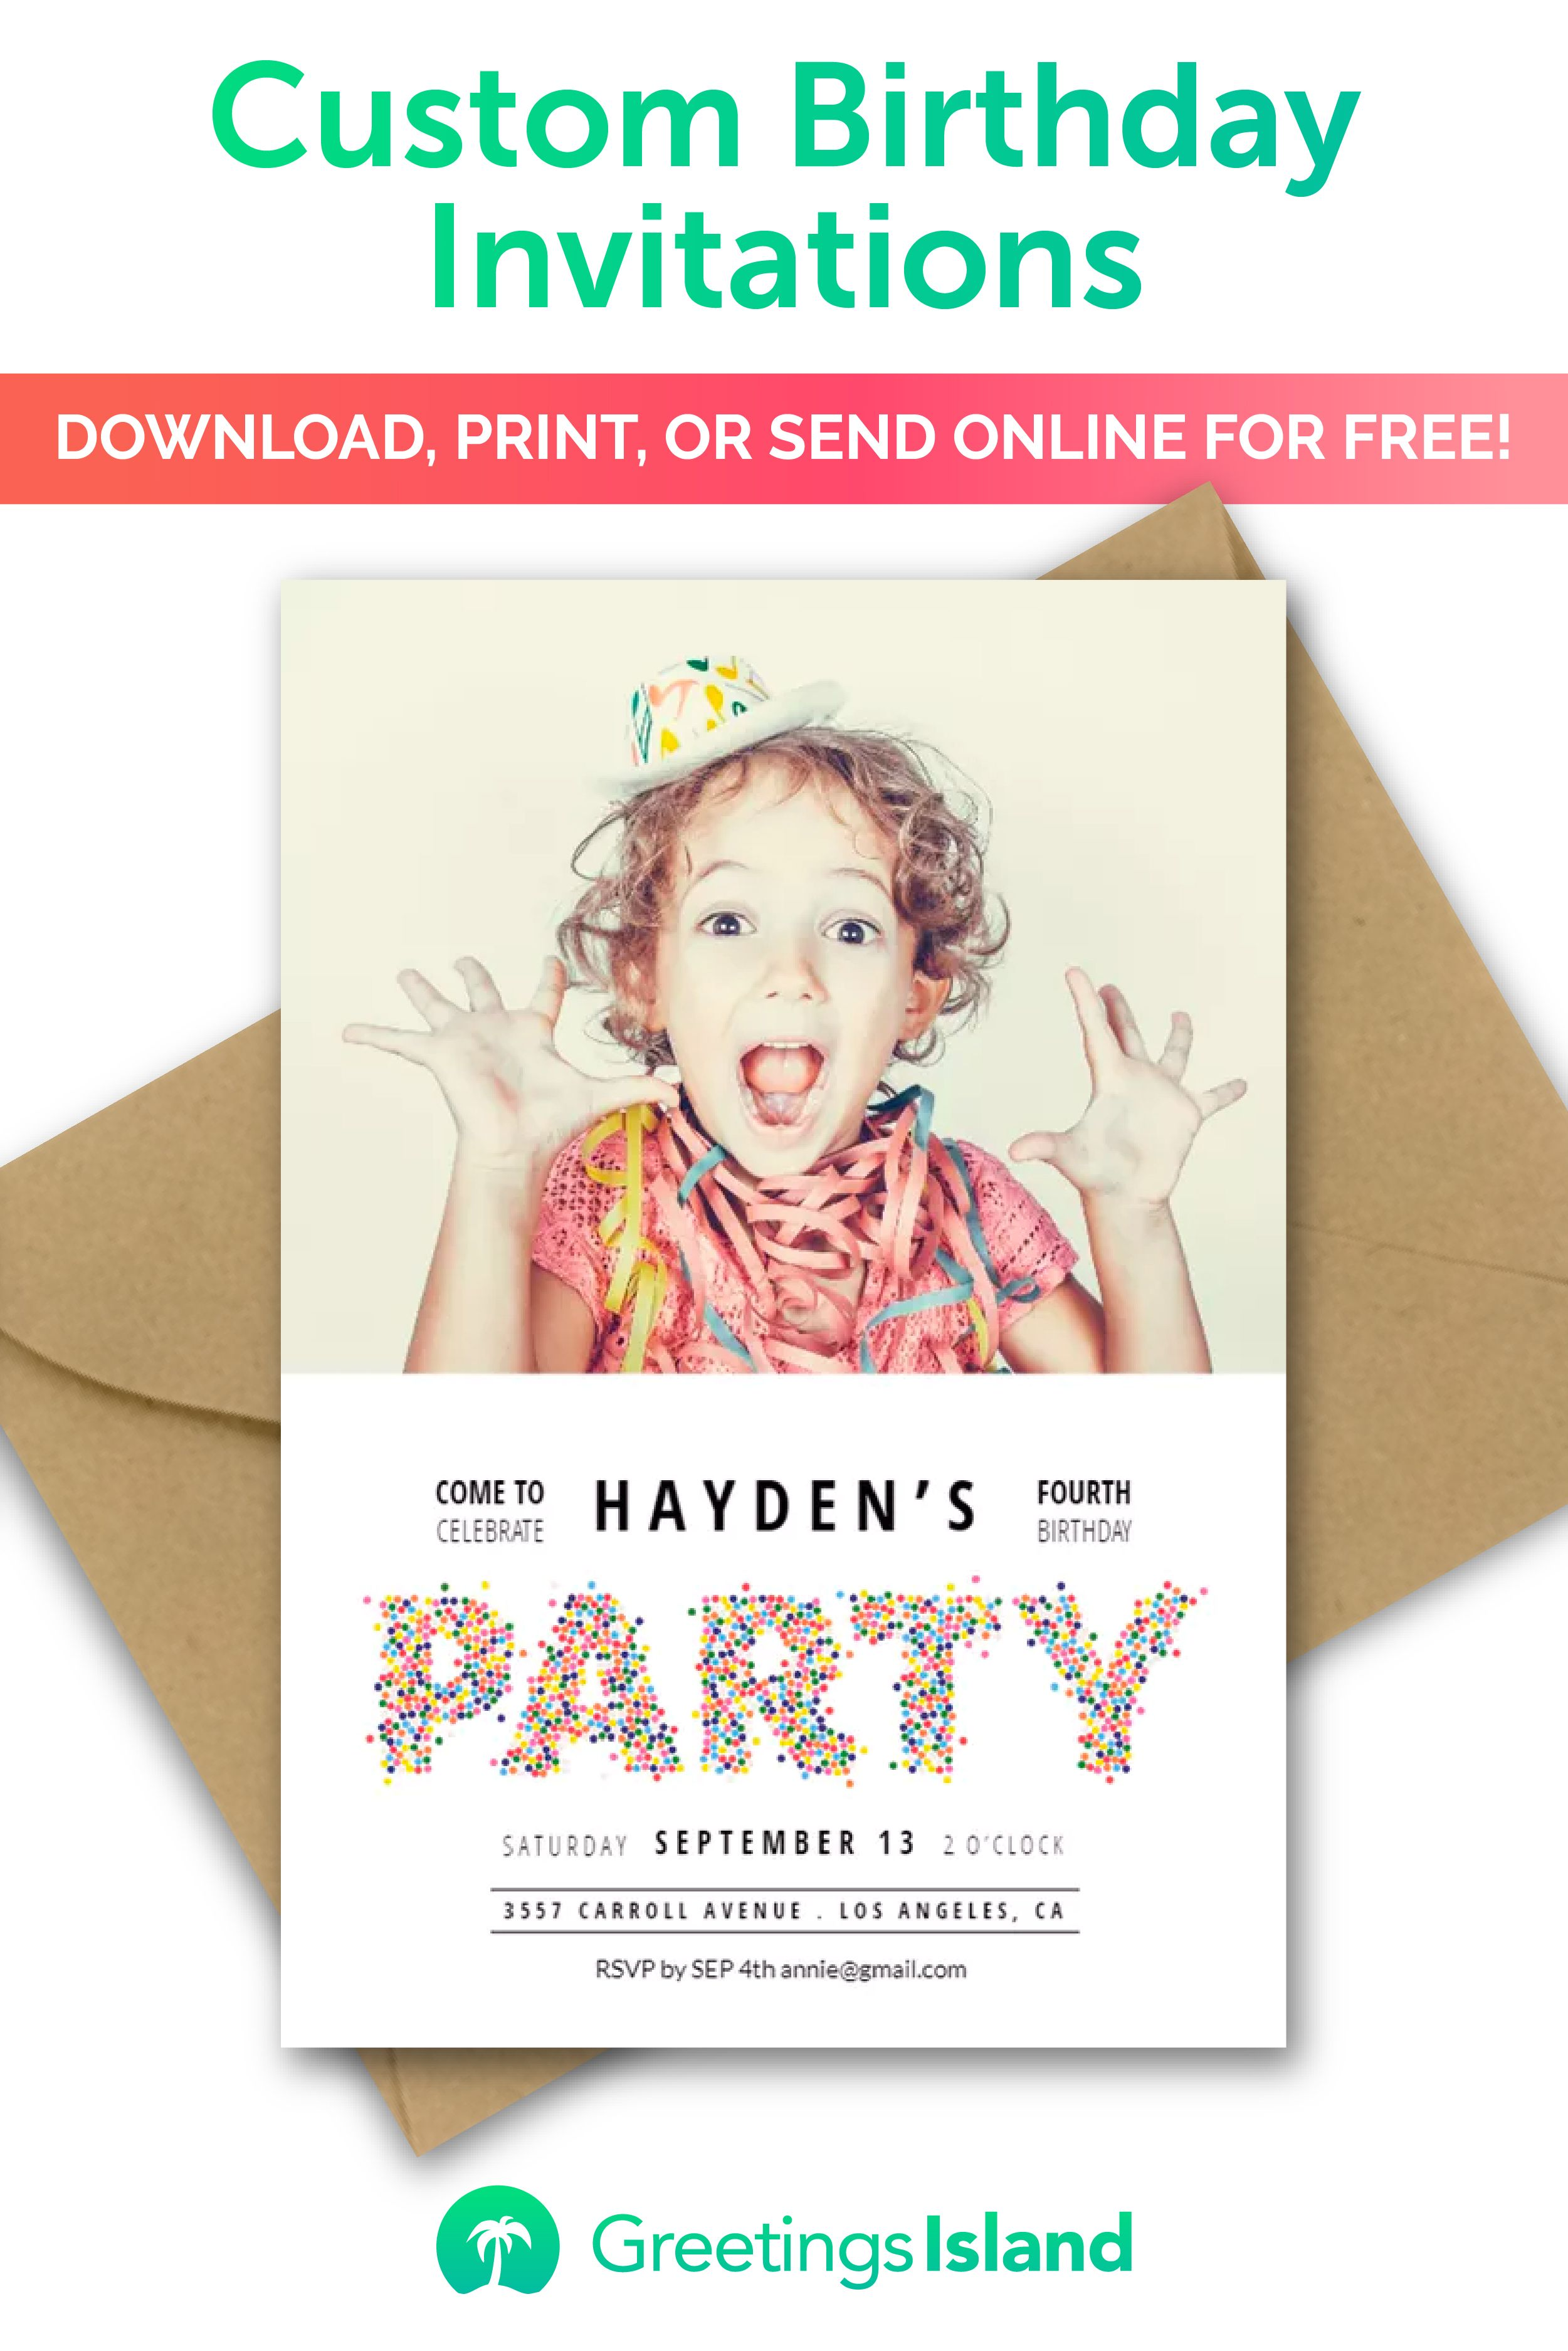 Create Your Own Birthday Invitation In Minutes Download Print Or Send Online For Free Easy To Customize Choose From 589 Editable Designs